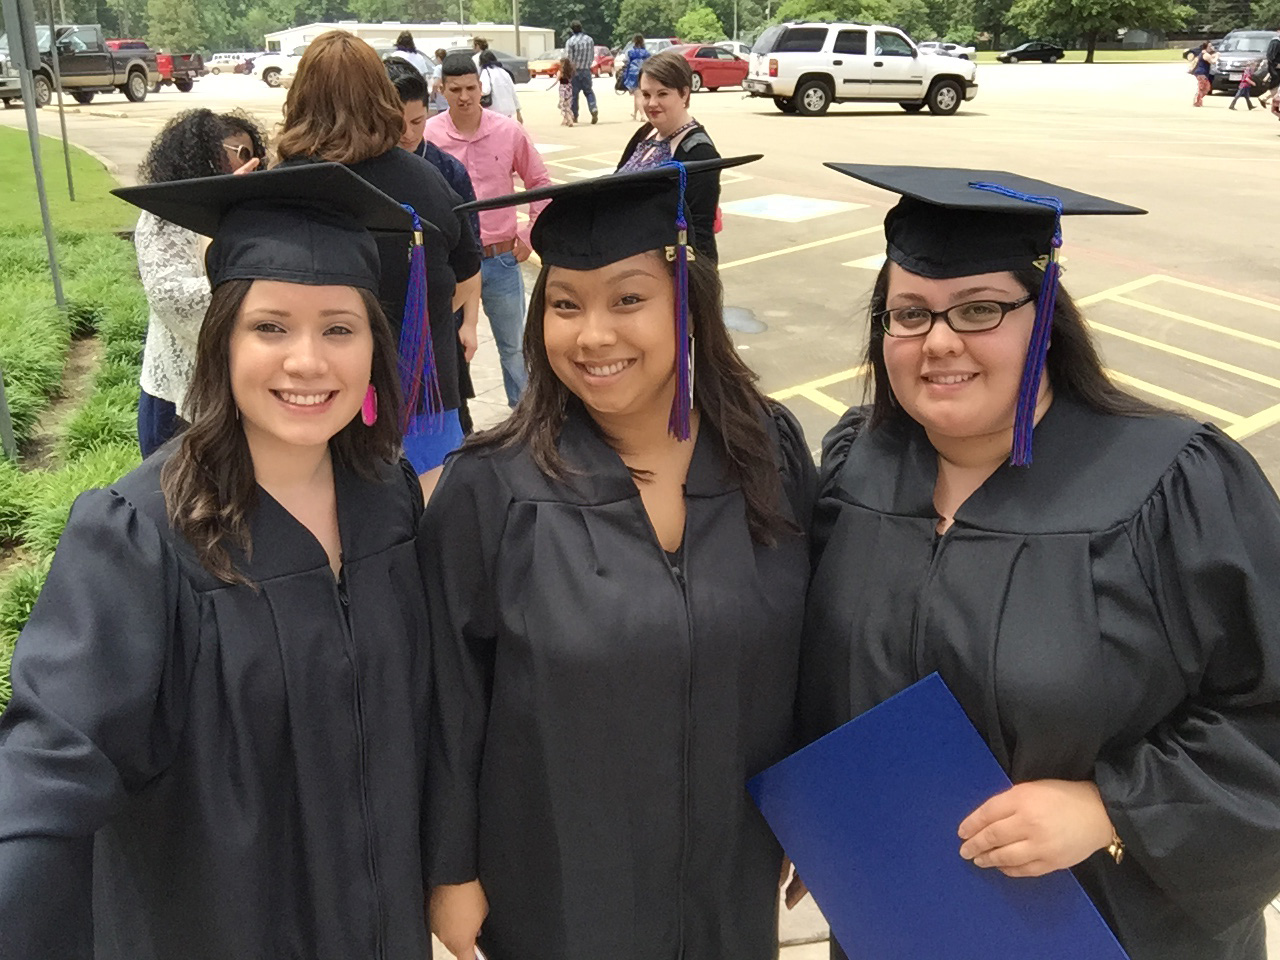 ^ Texas A&M-Texarkana graduates Jessica, friend Nicole Cruz, and Marisol on May 16, 2015. Both Jessica and Marisol graduated with bachelor's degrees in Business Administration.